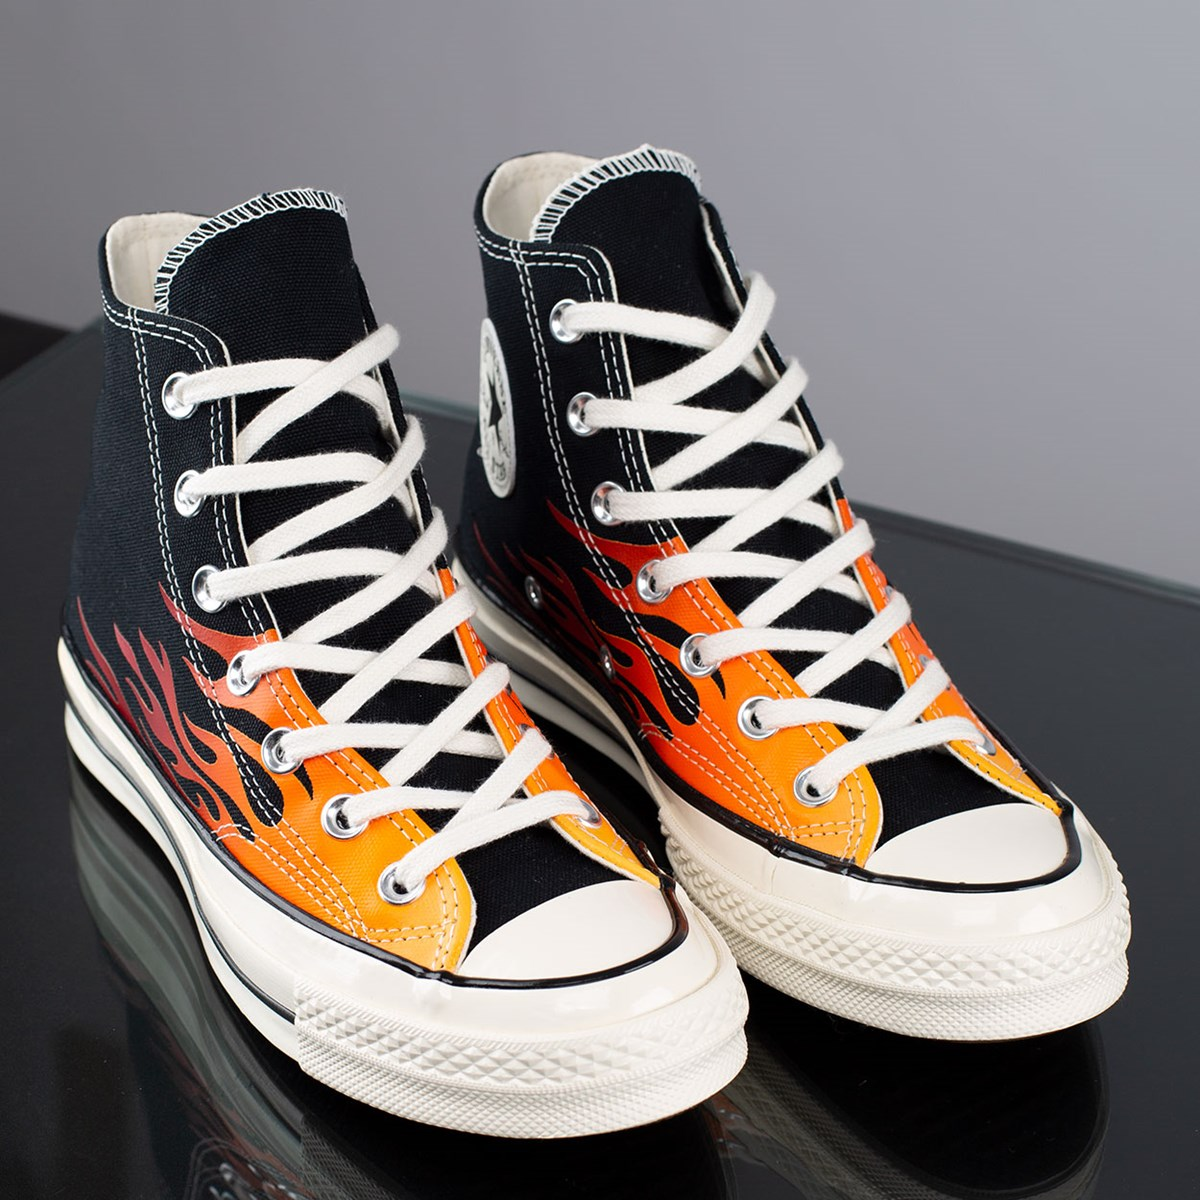 Tênis Converse Chuck 70 Hi Archive Prints Remixed Flames Black Enamel Red 165024C